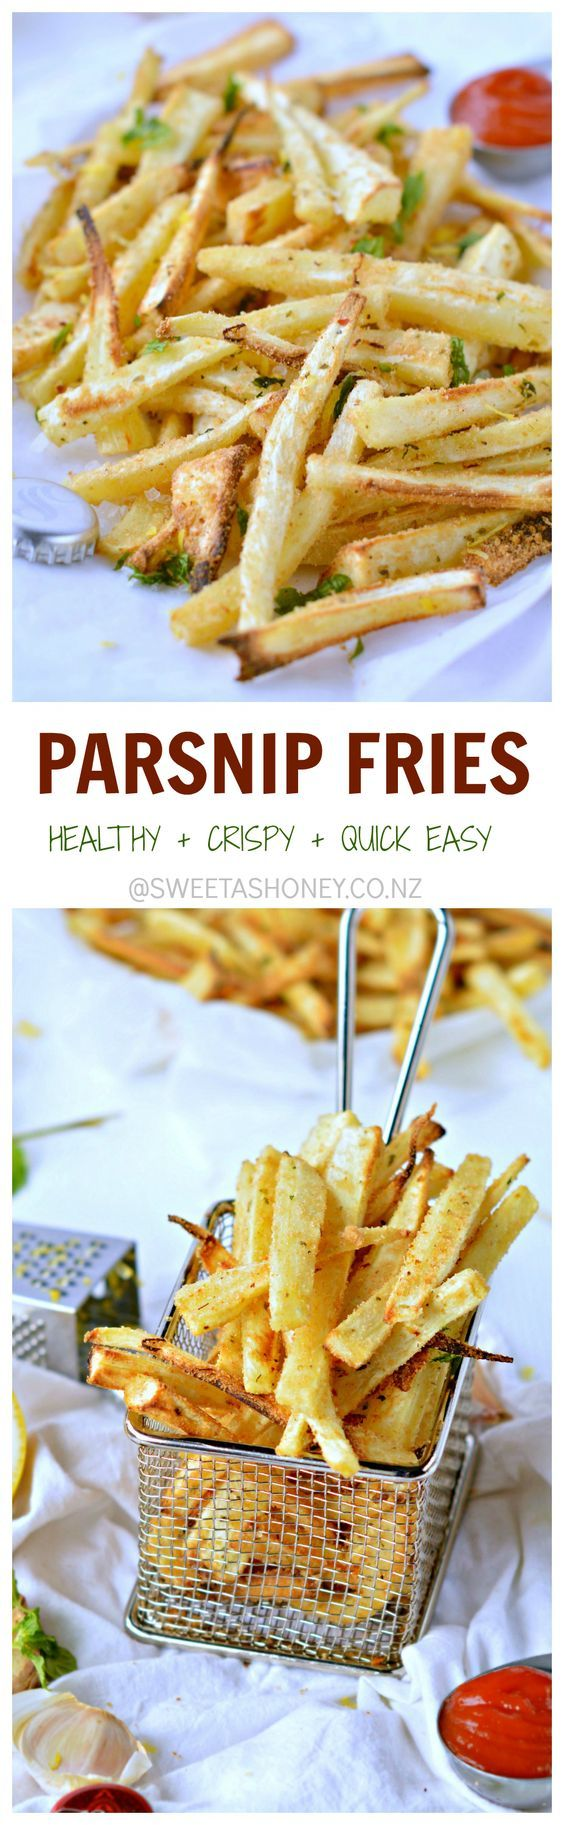 Super addictive Healthy Crispy Parsnip Fries with lemon + olive oil + mint + garlic. Only 85 kcal/100 g